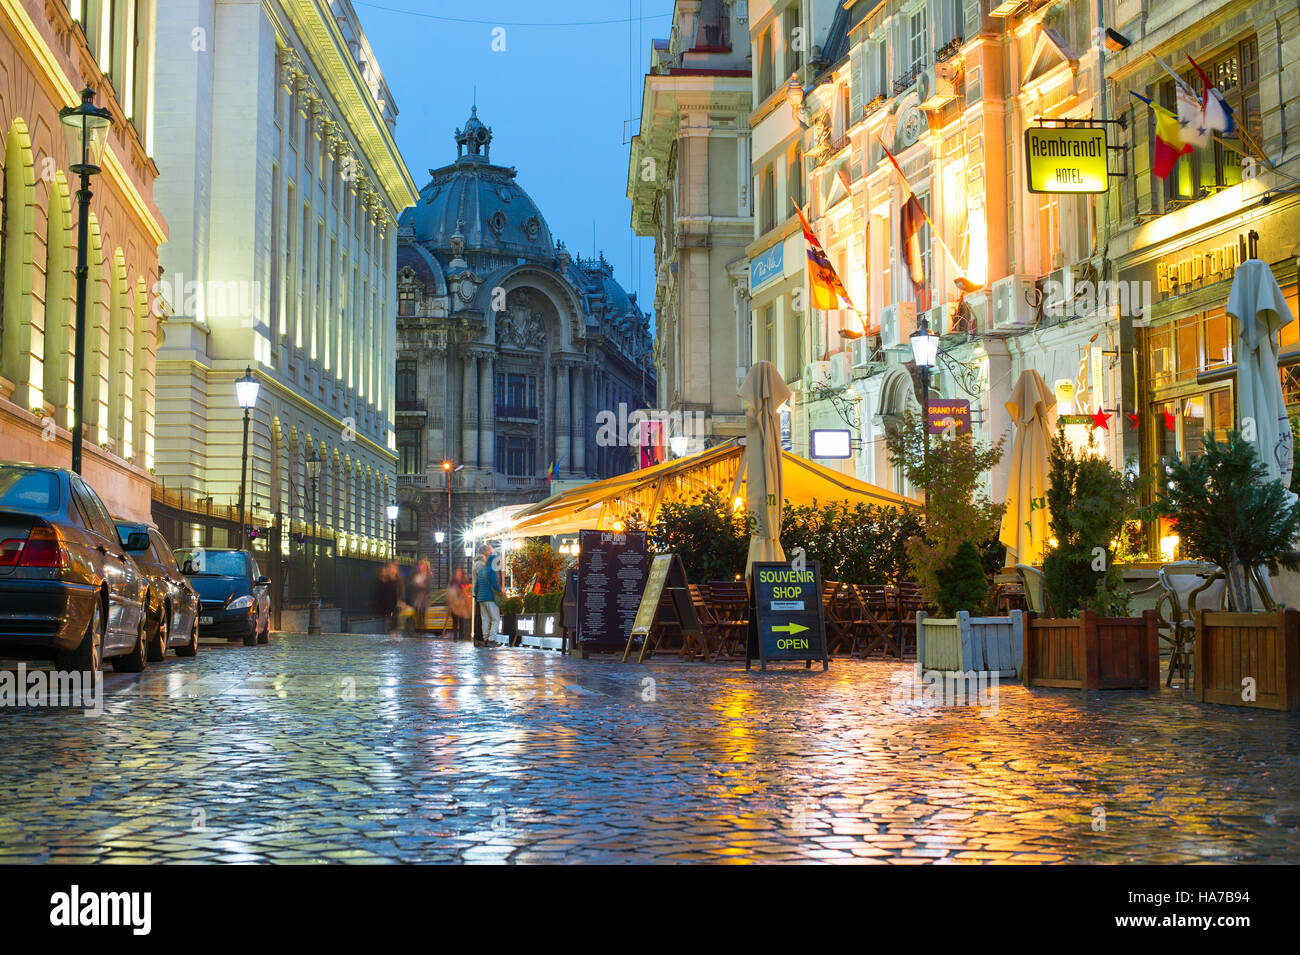 Old Town of Bucharest. The Old Town part of Bucharest, also called Lipscani. Romania - Stock Image